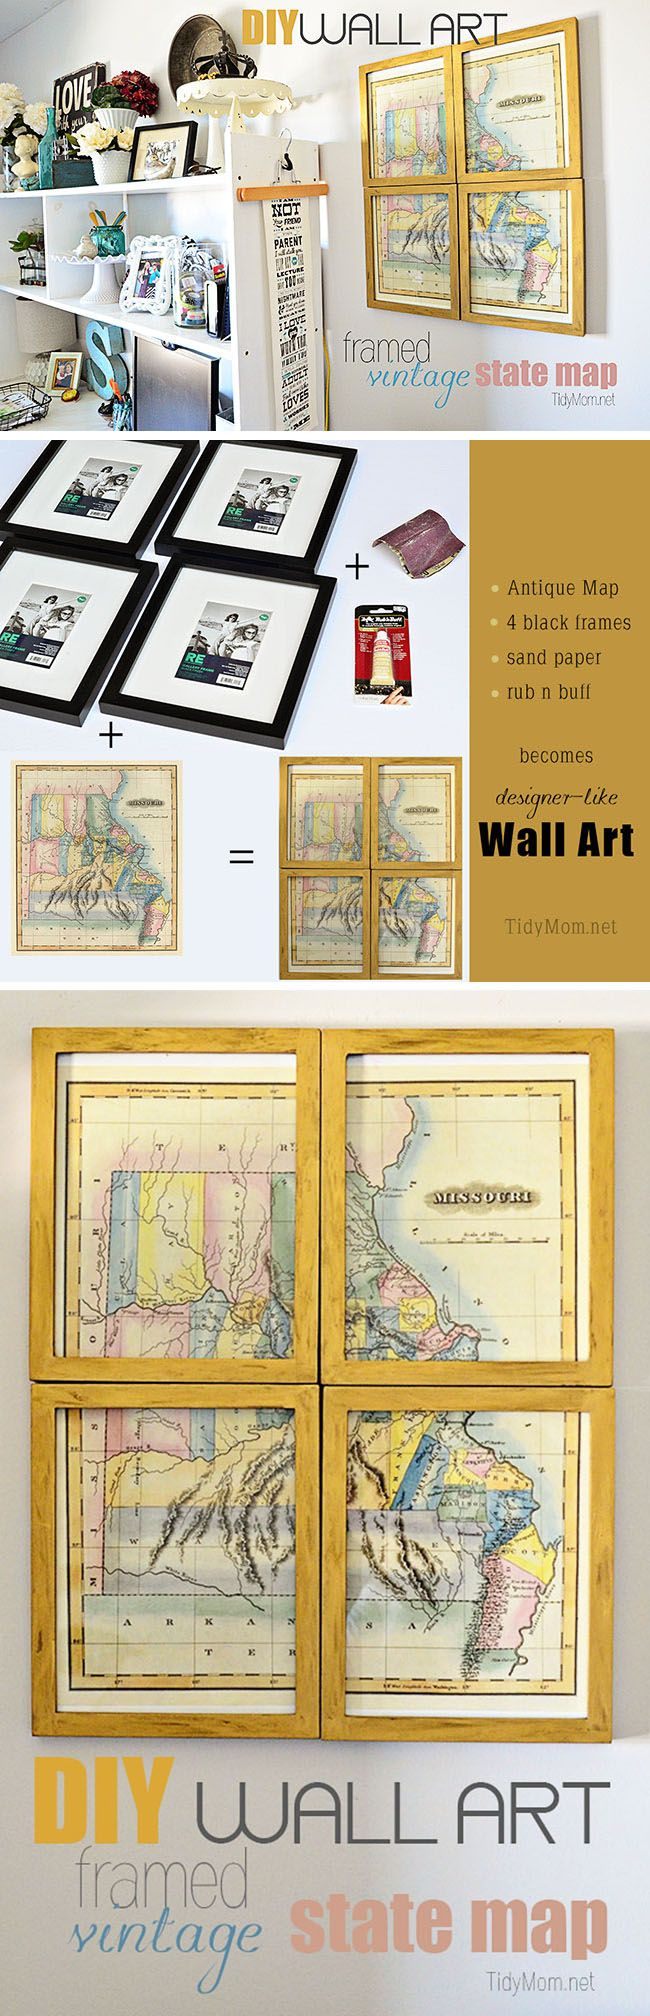 DIY Framed Vintage State Map | Diy wall art, Diy wall and Tutorials